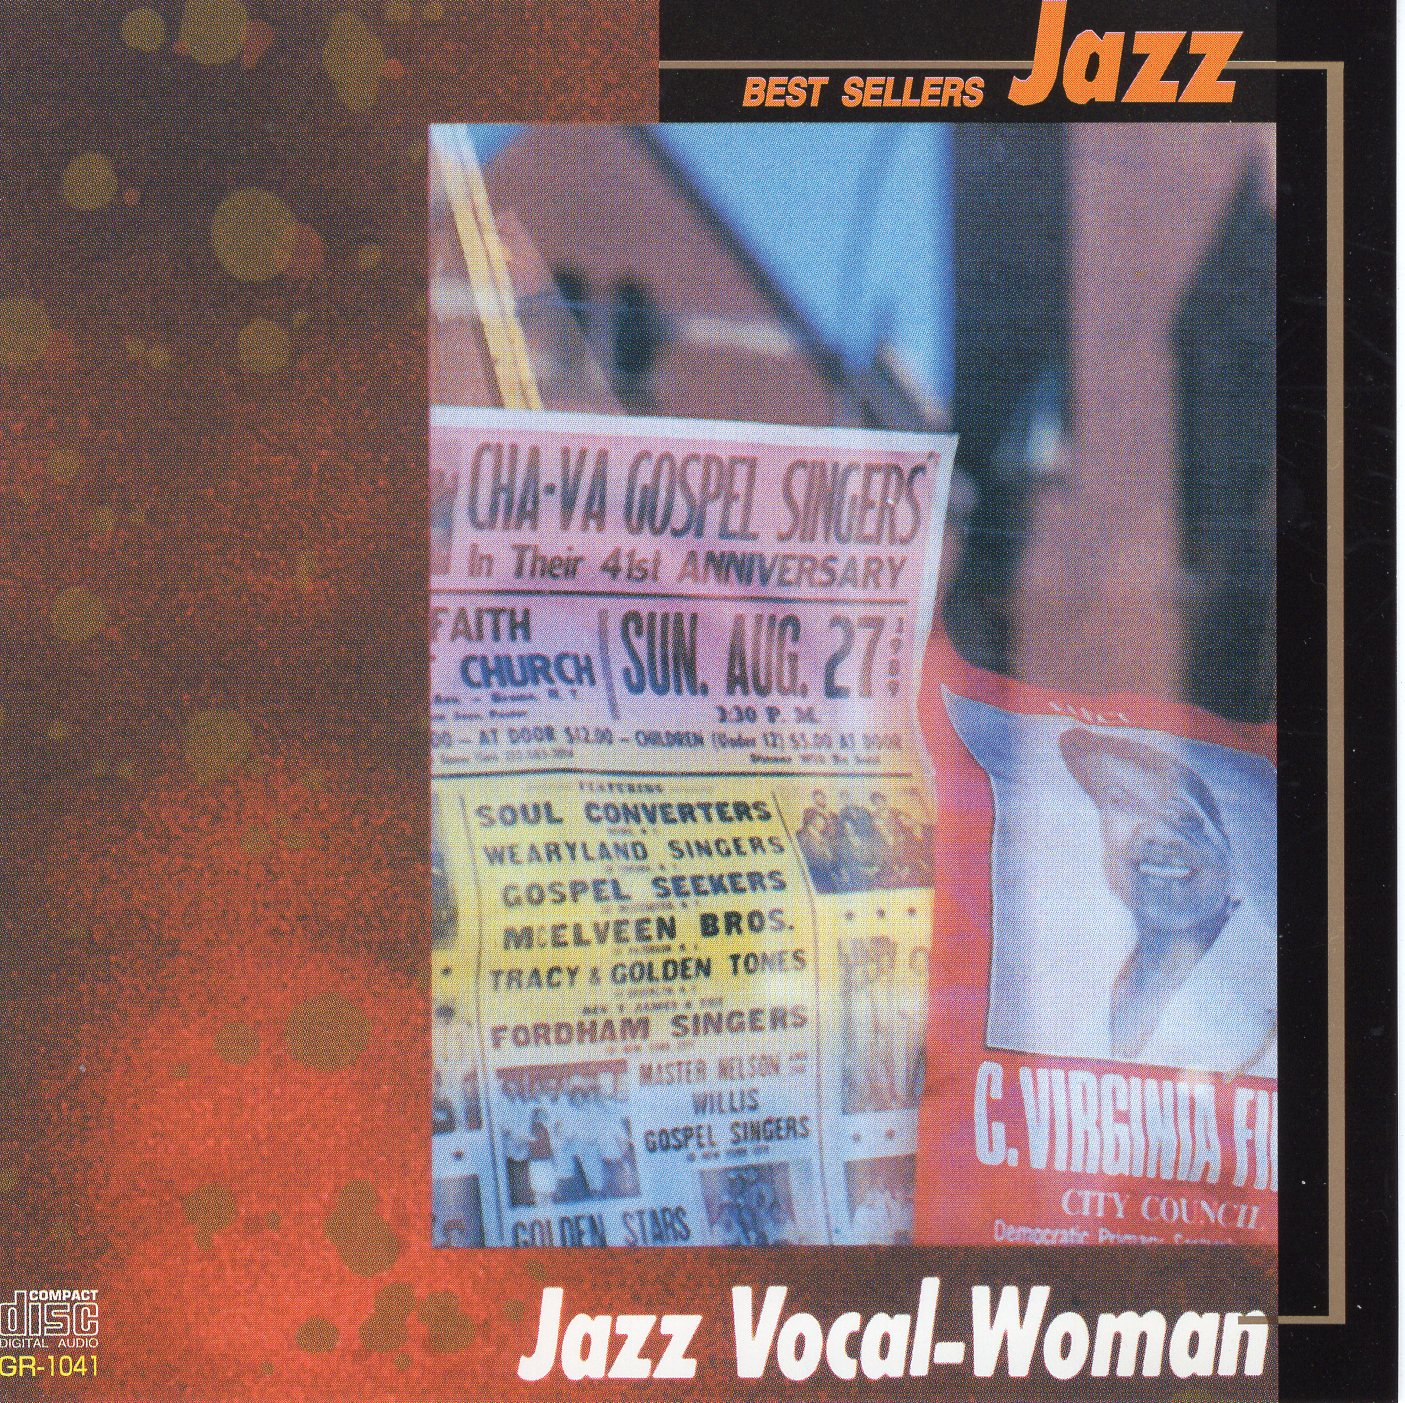 """Best Sellers Jazz: Jazz Vocal-Woman"""